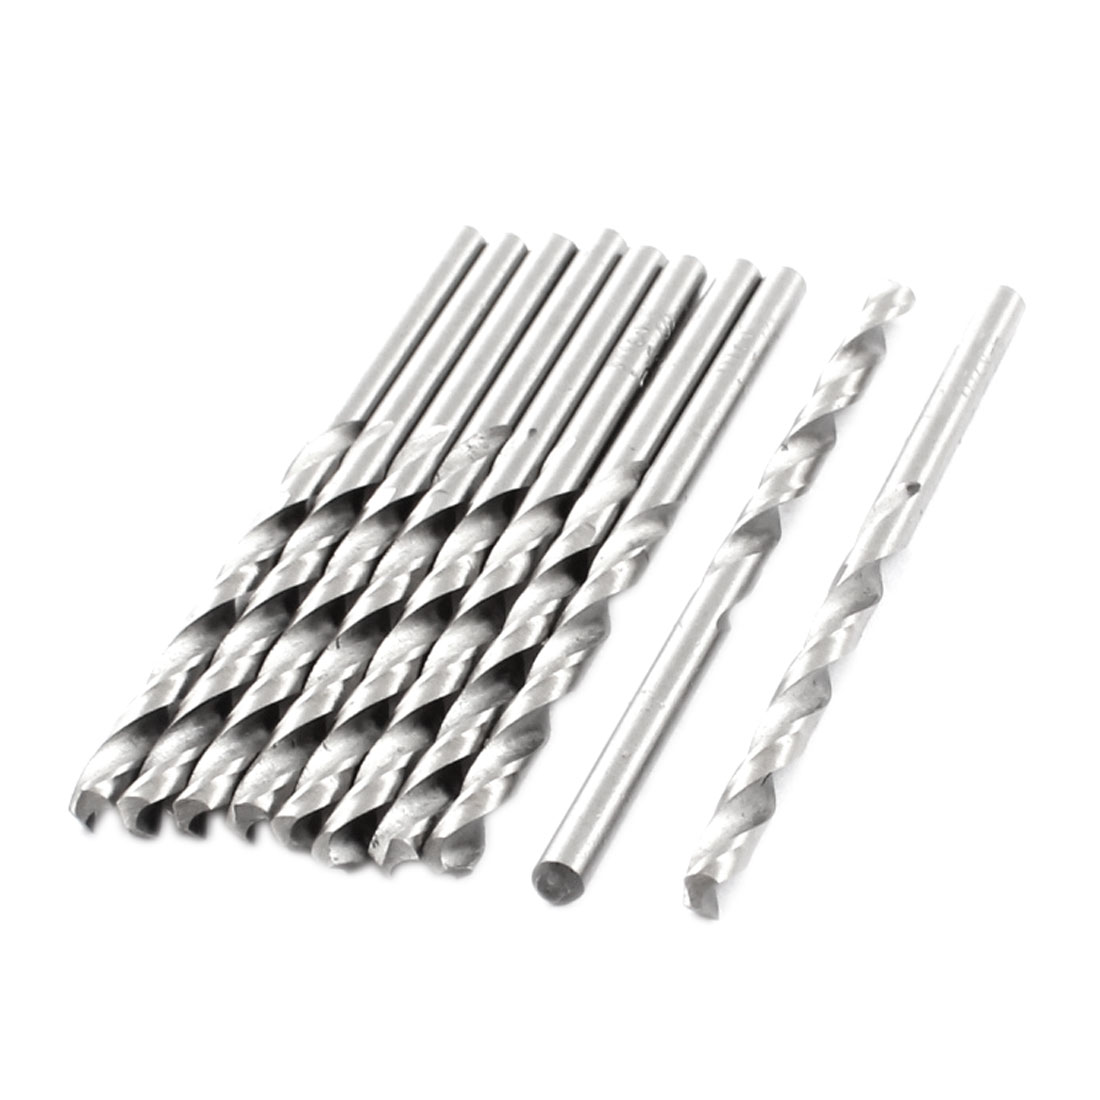 HSS Straight Shank 3.4mm Twist Head 68mm Long Drill Bit Silver Tone 10PCS